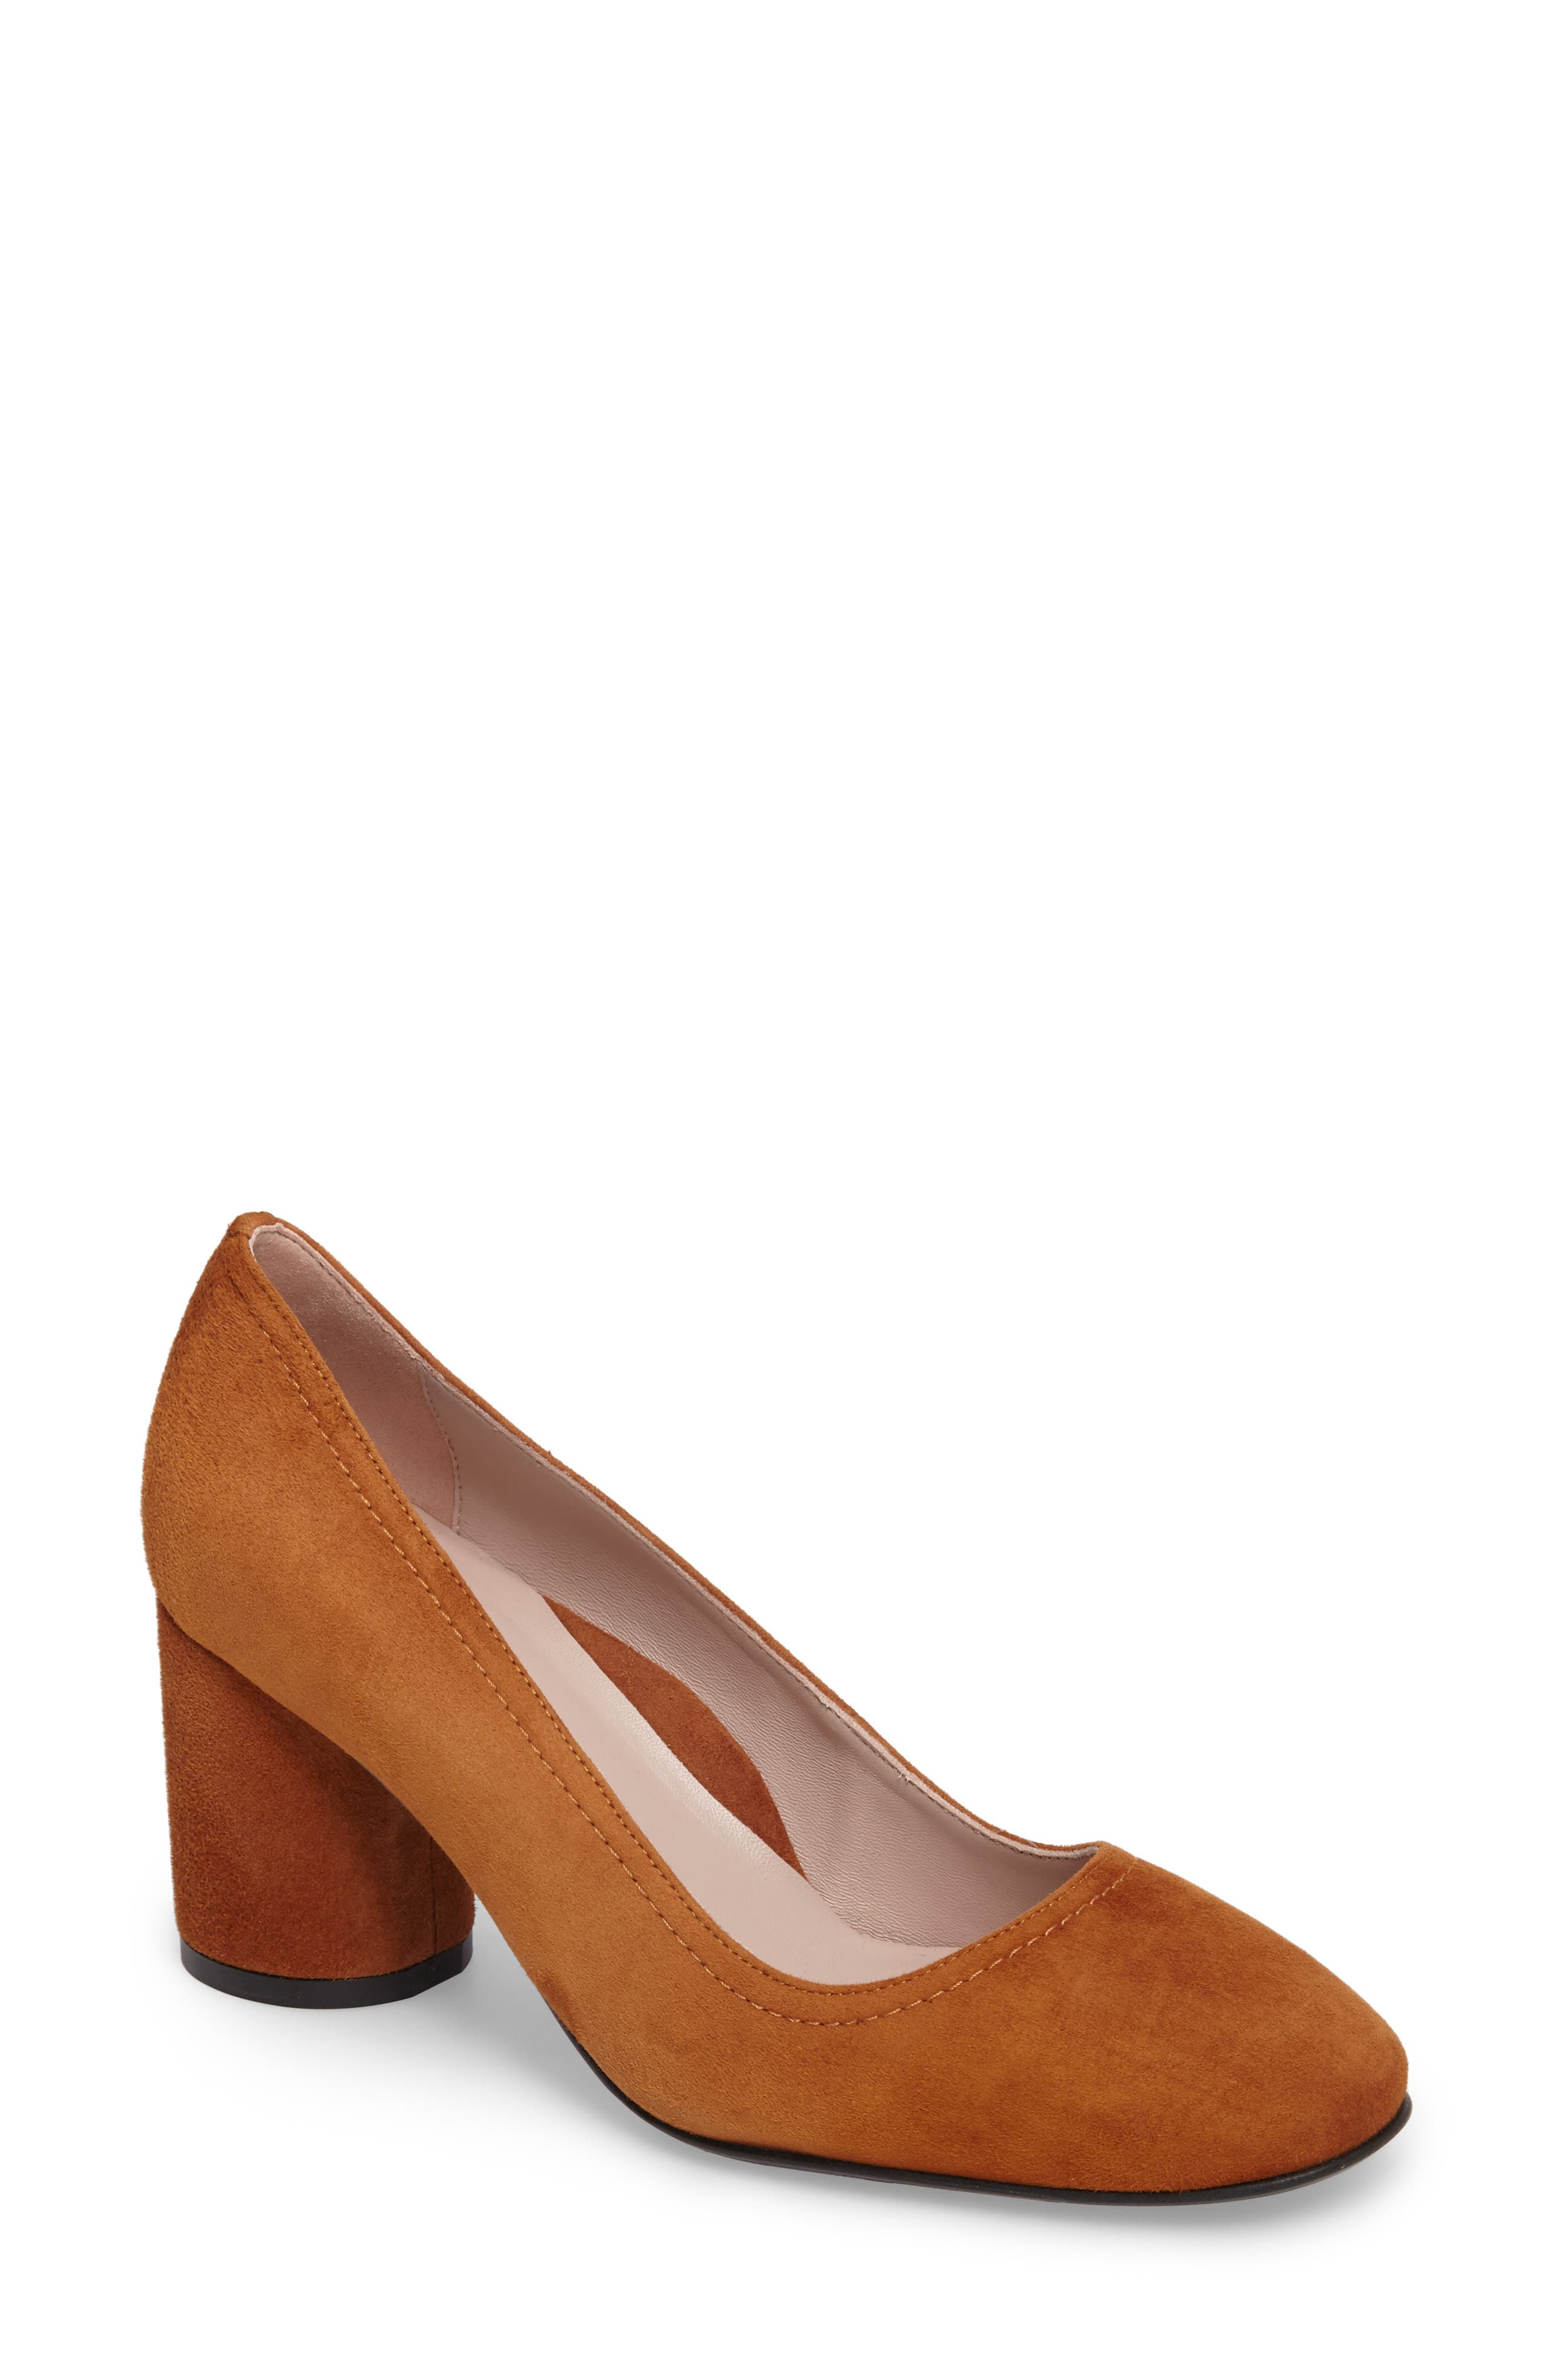 Filomena Block Heel Pump by Taryn Rose